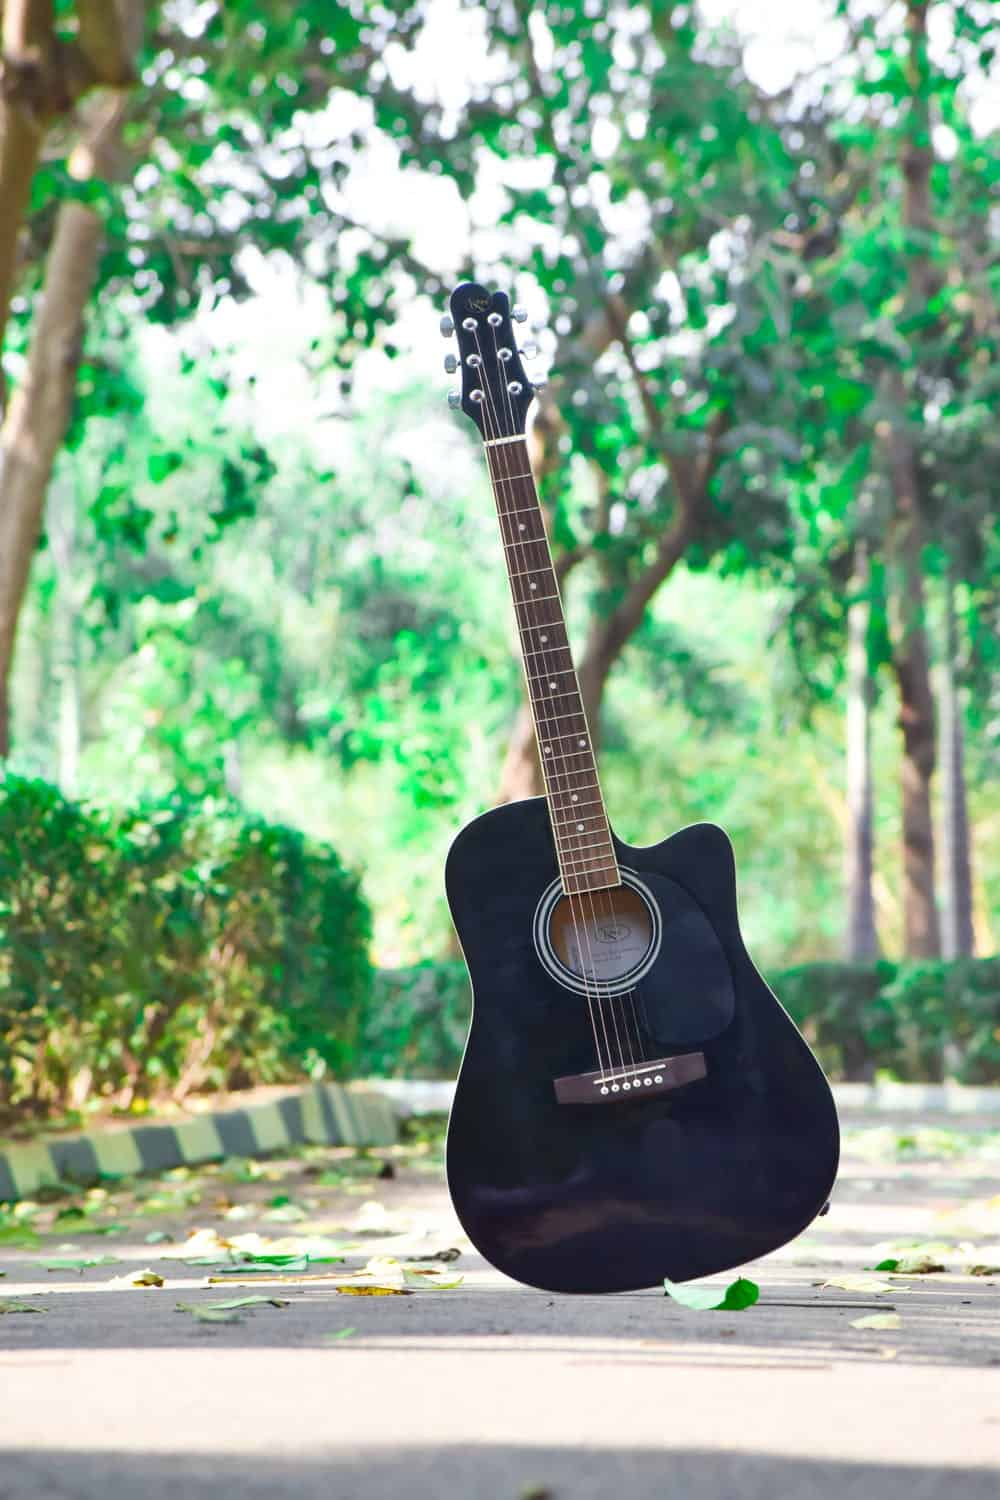 Learn the Basic Guitar Chords with A SONG!